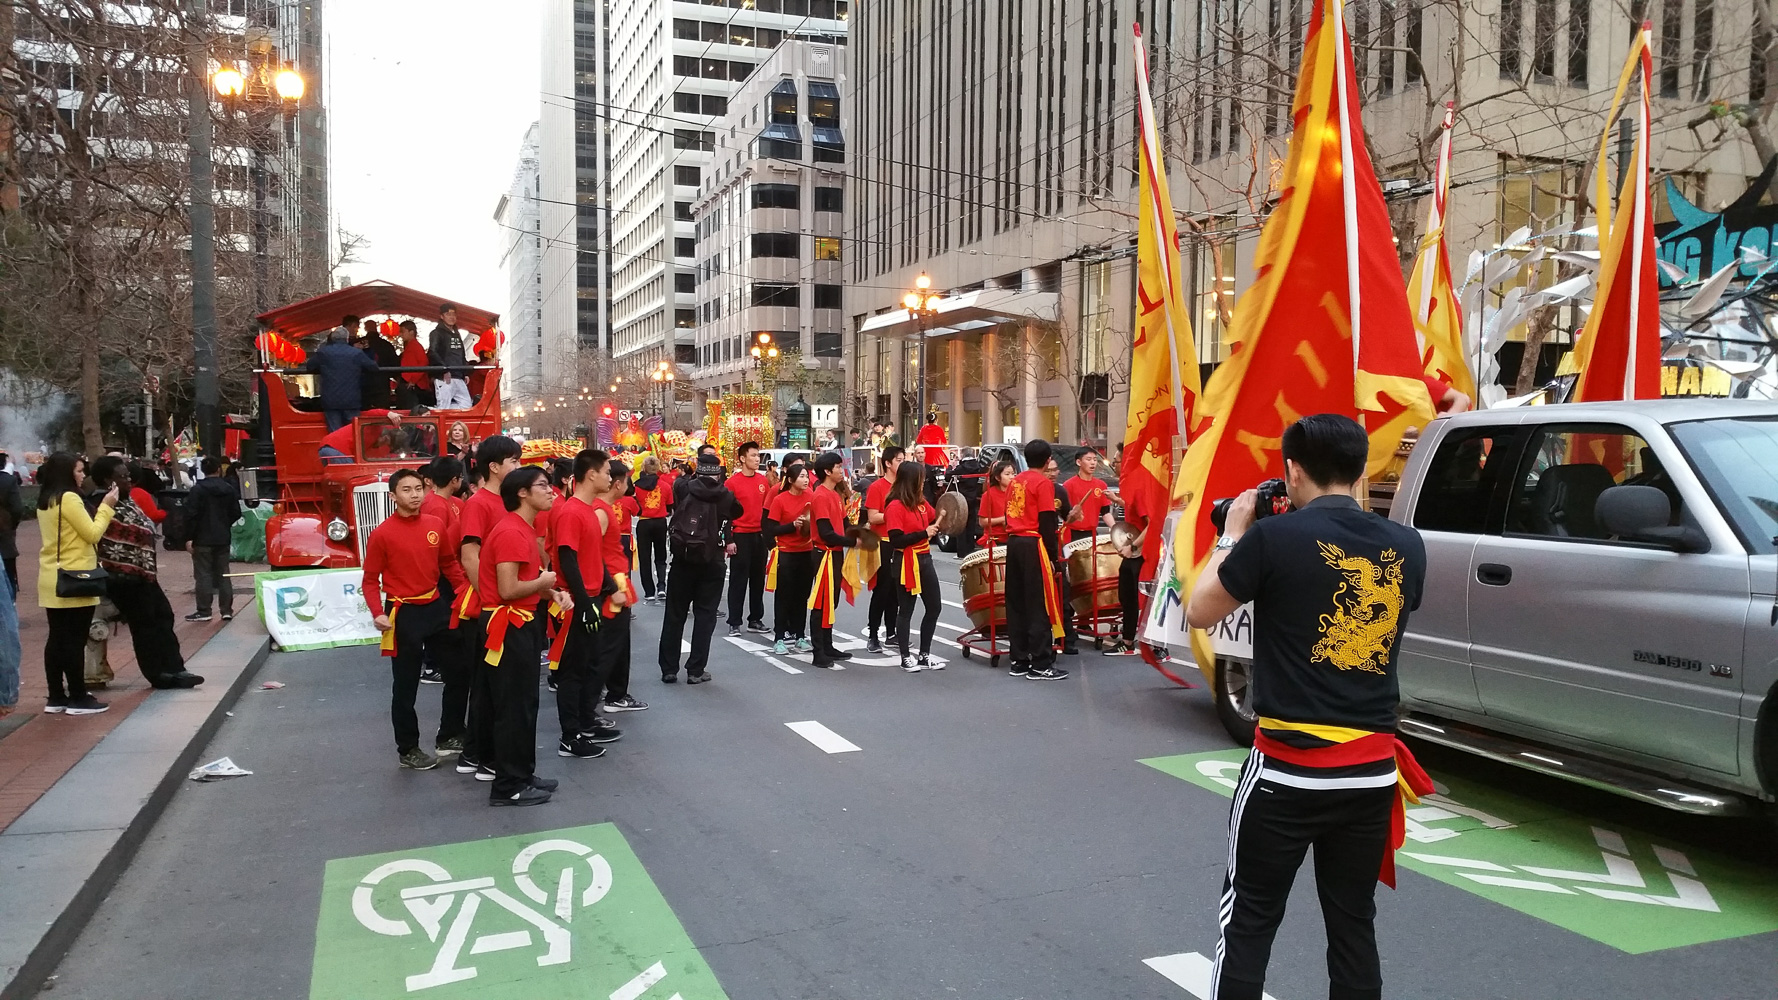 San Francisco Chinese New Years parade staging area for the parade